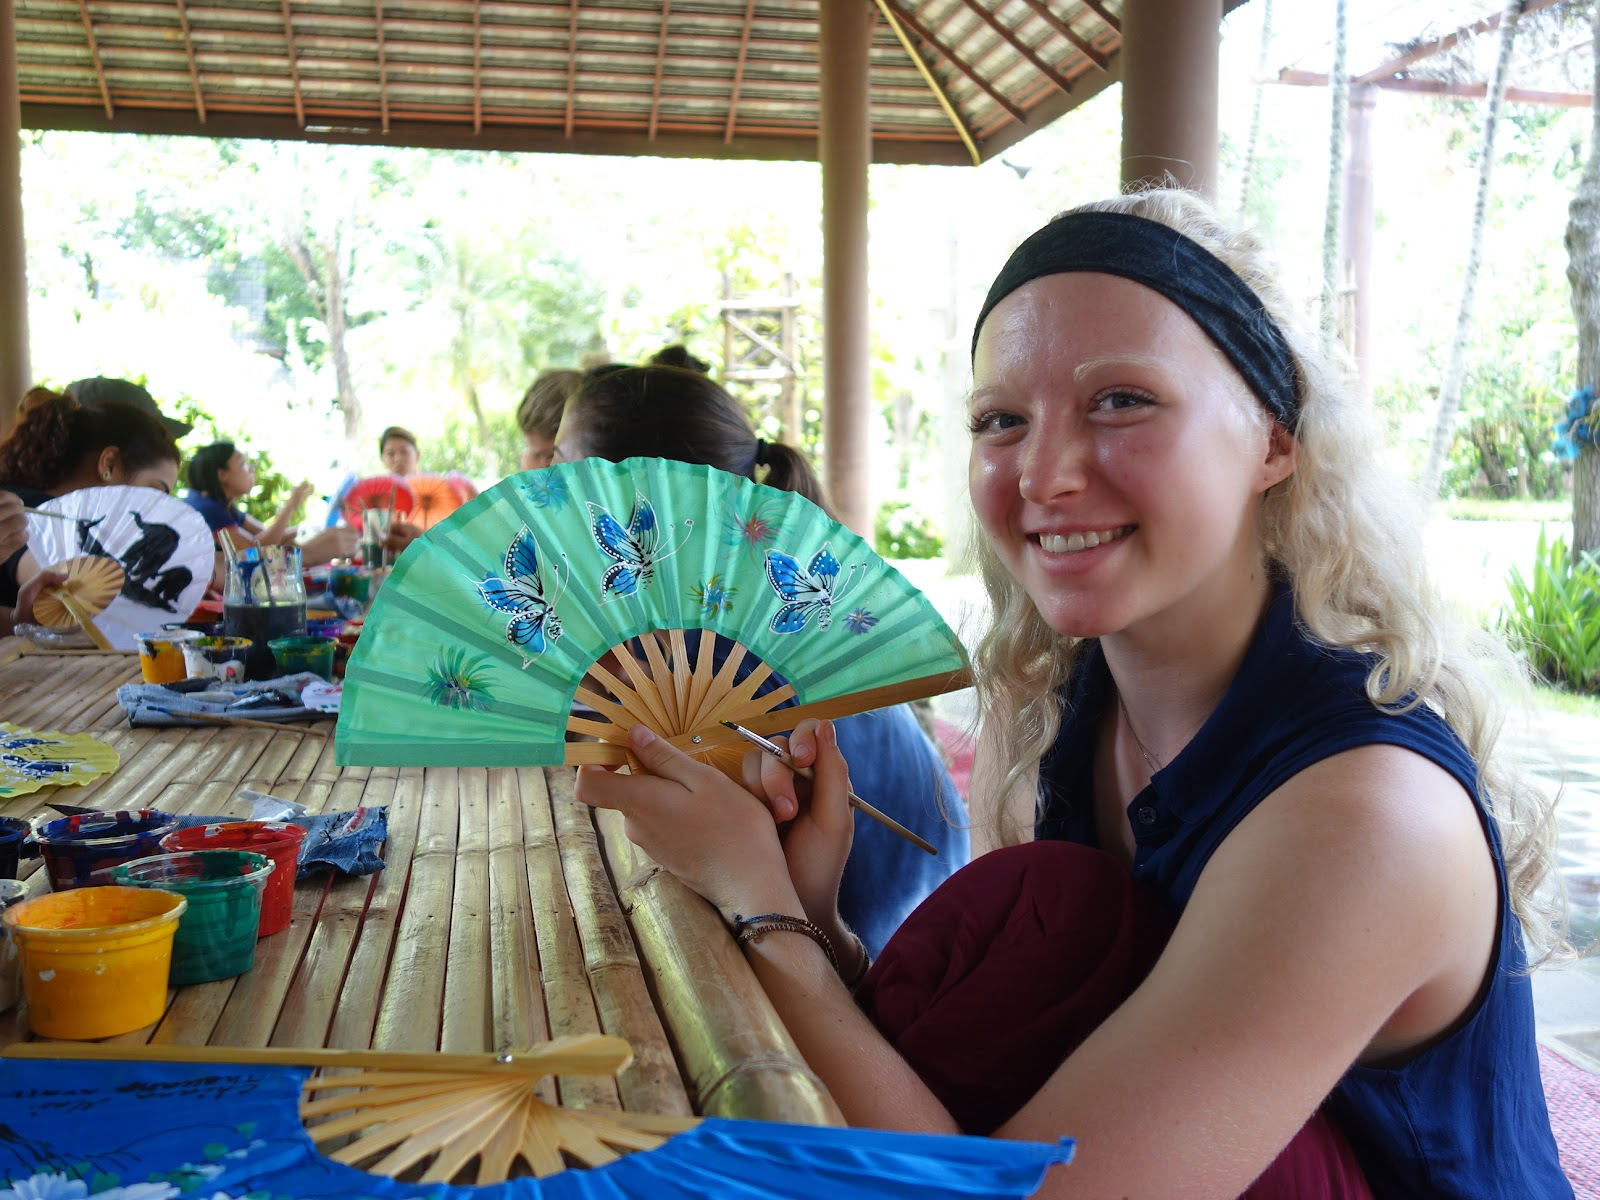 Learning to make Thai fans on the crafting culture tour